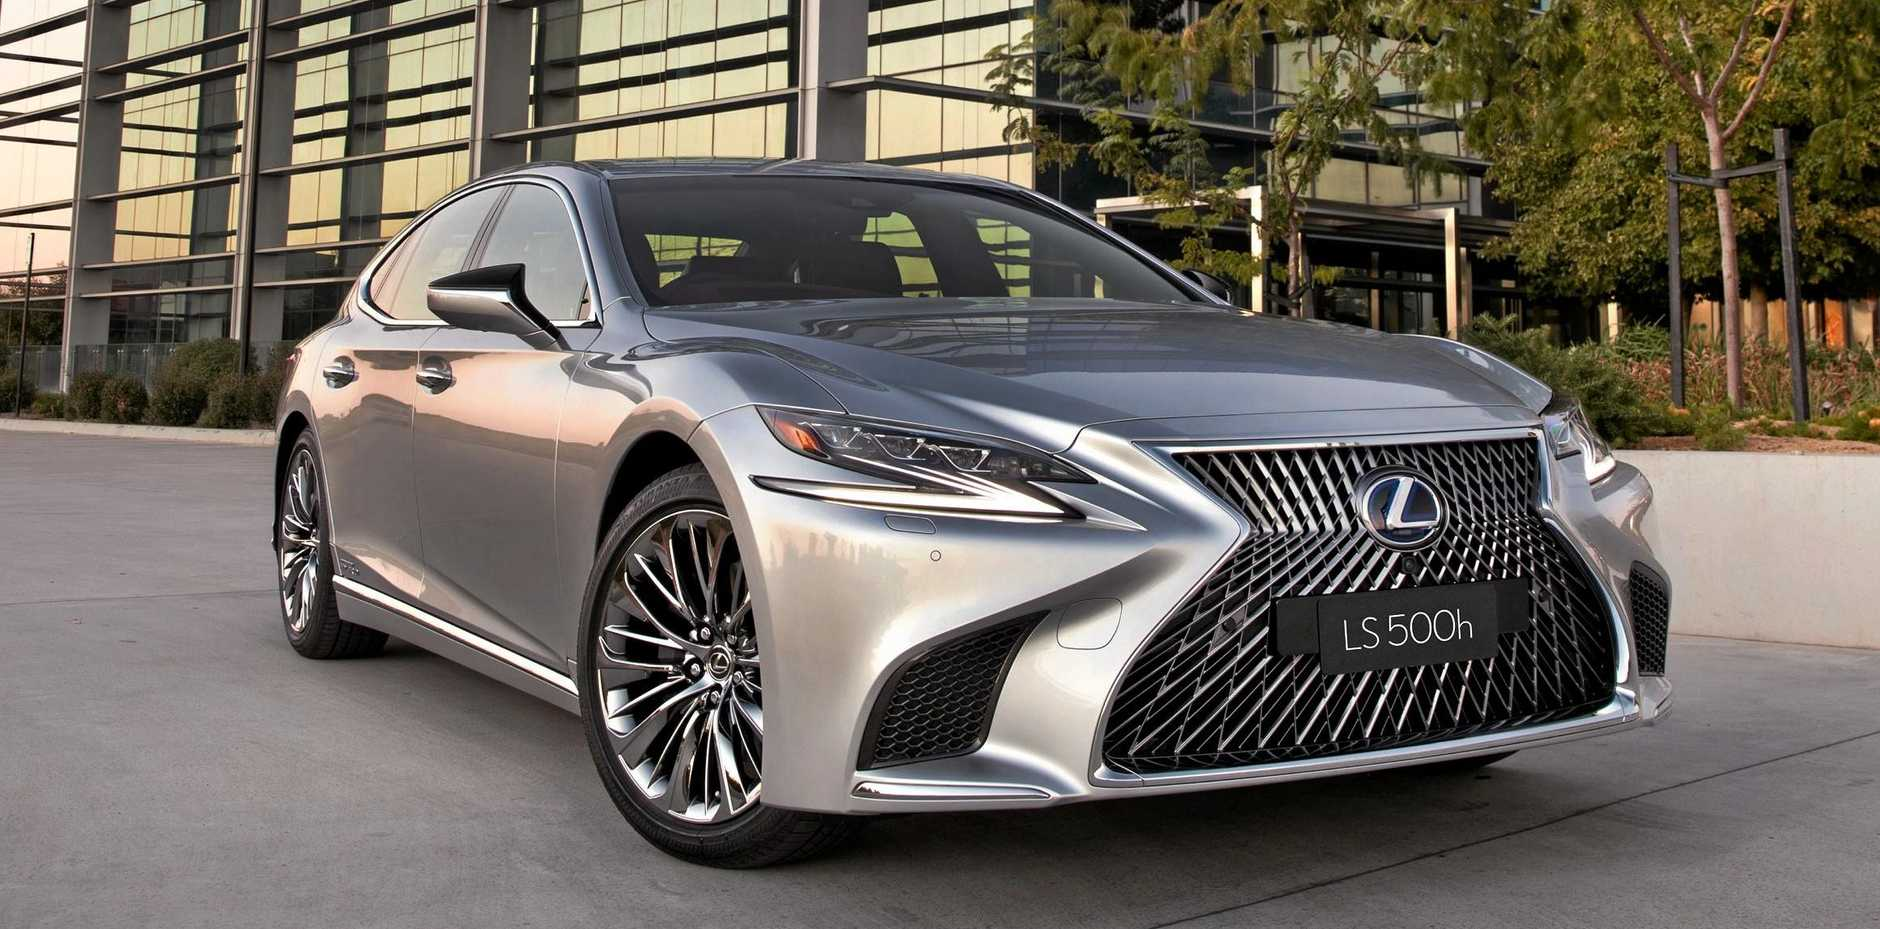 The 2018 Lexus LS500h Sports Luxury is the epitome of luxury from the Japanese marque.